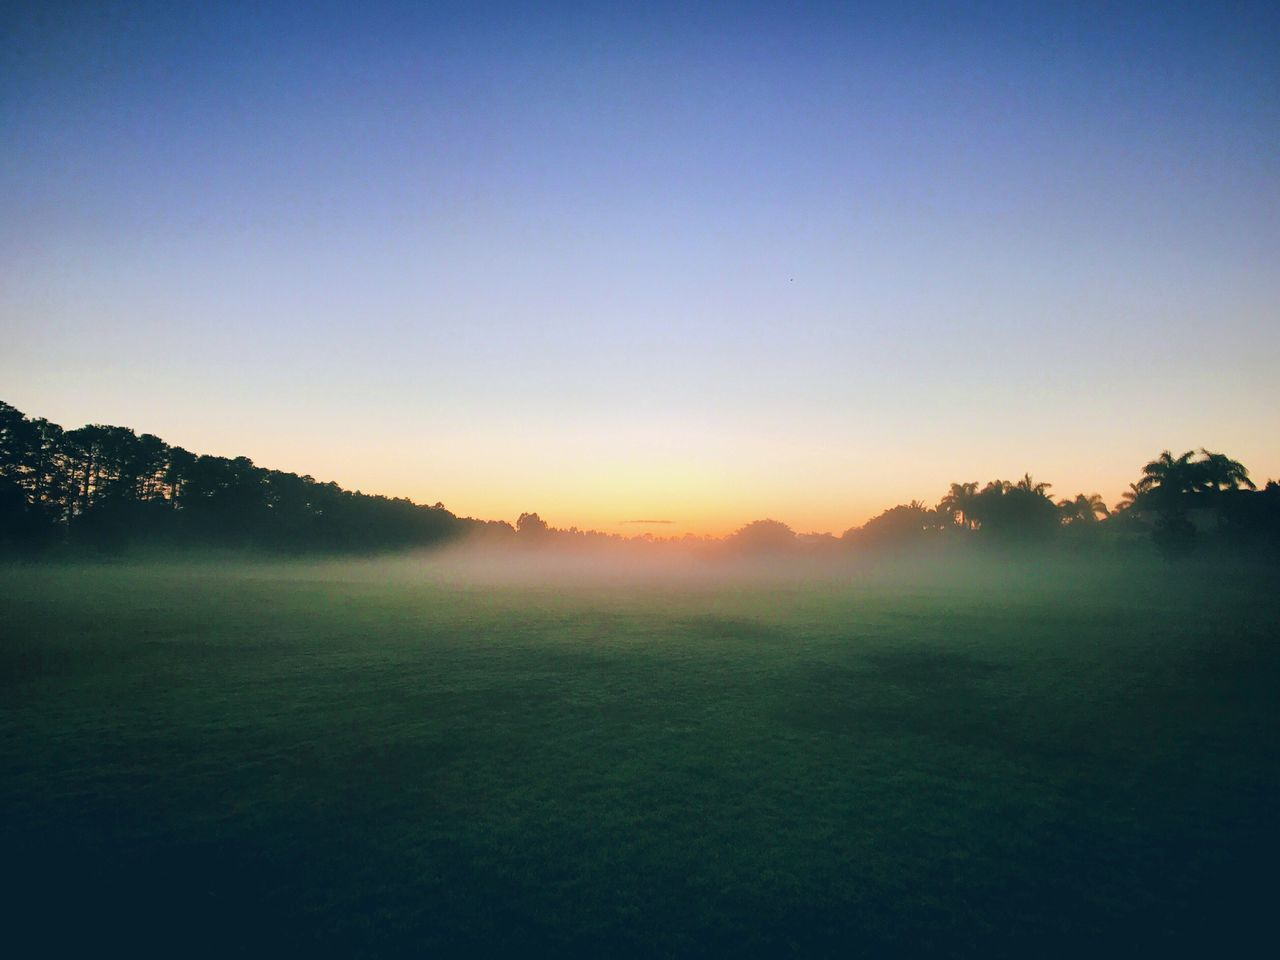 landscape, nature, tranquil scene, tranquility, field, beauty in nature, scenics, clear sky, tree, grass, sunset, idyllic, no people, outdoors, silhouette, sky, hazy, day, golf course